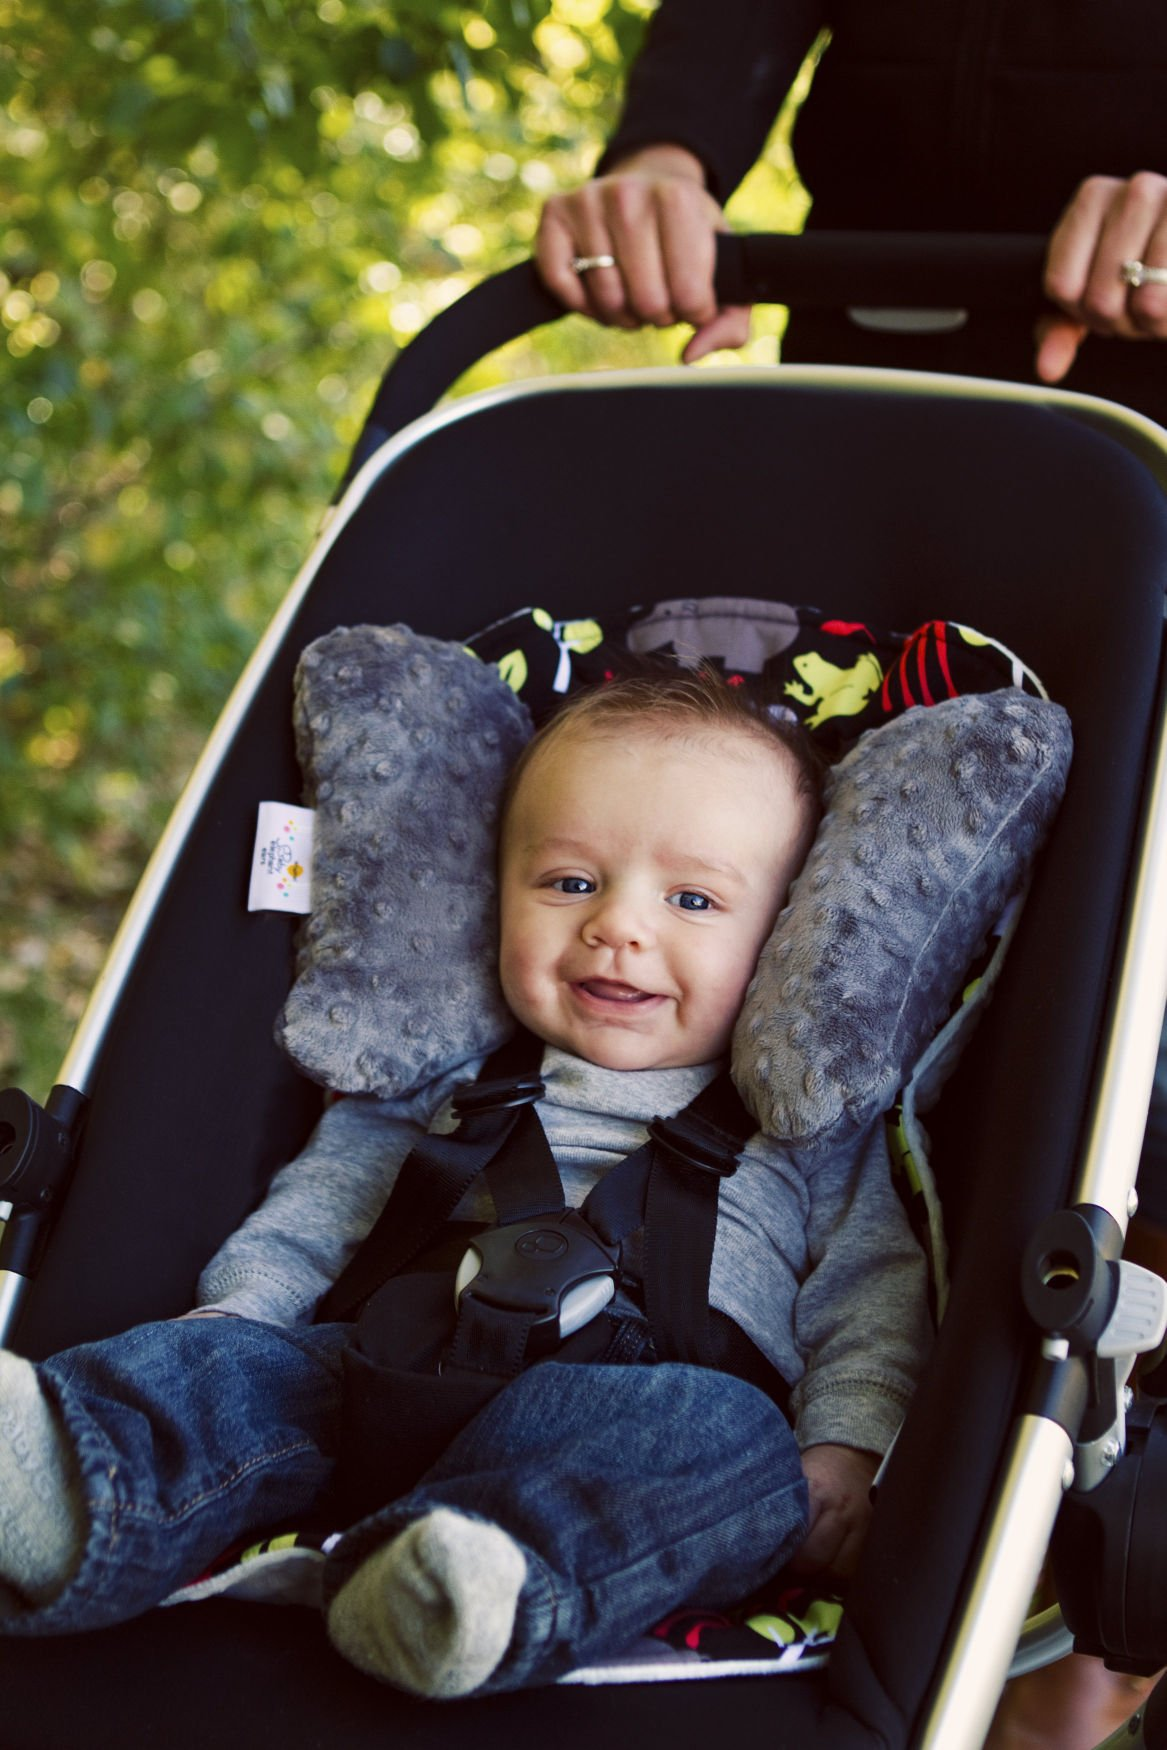 Local mom's fussy baby solution goes global